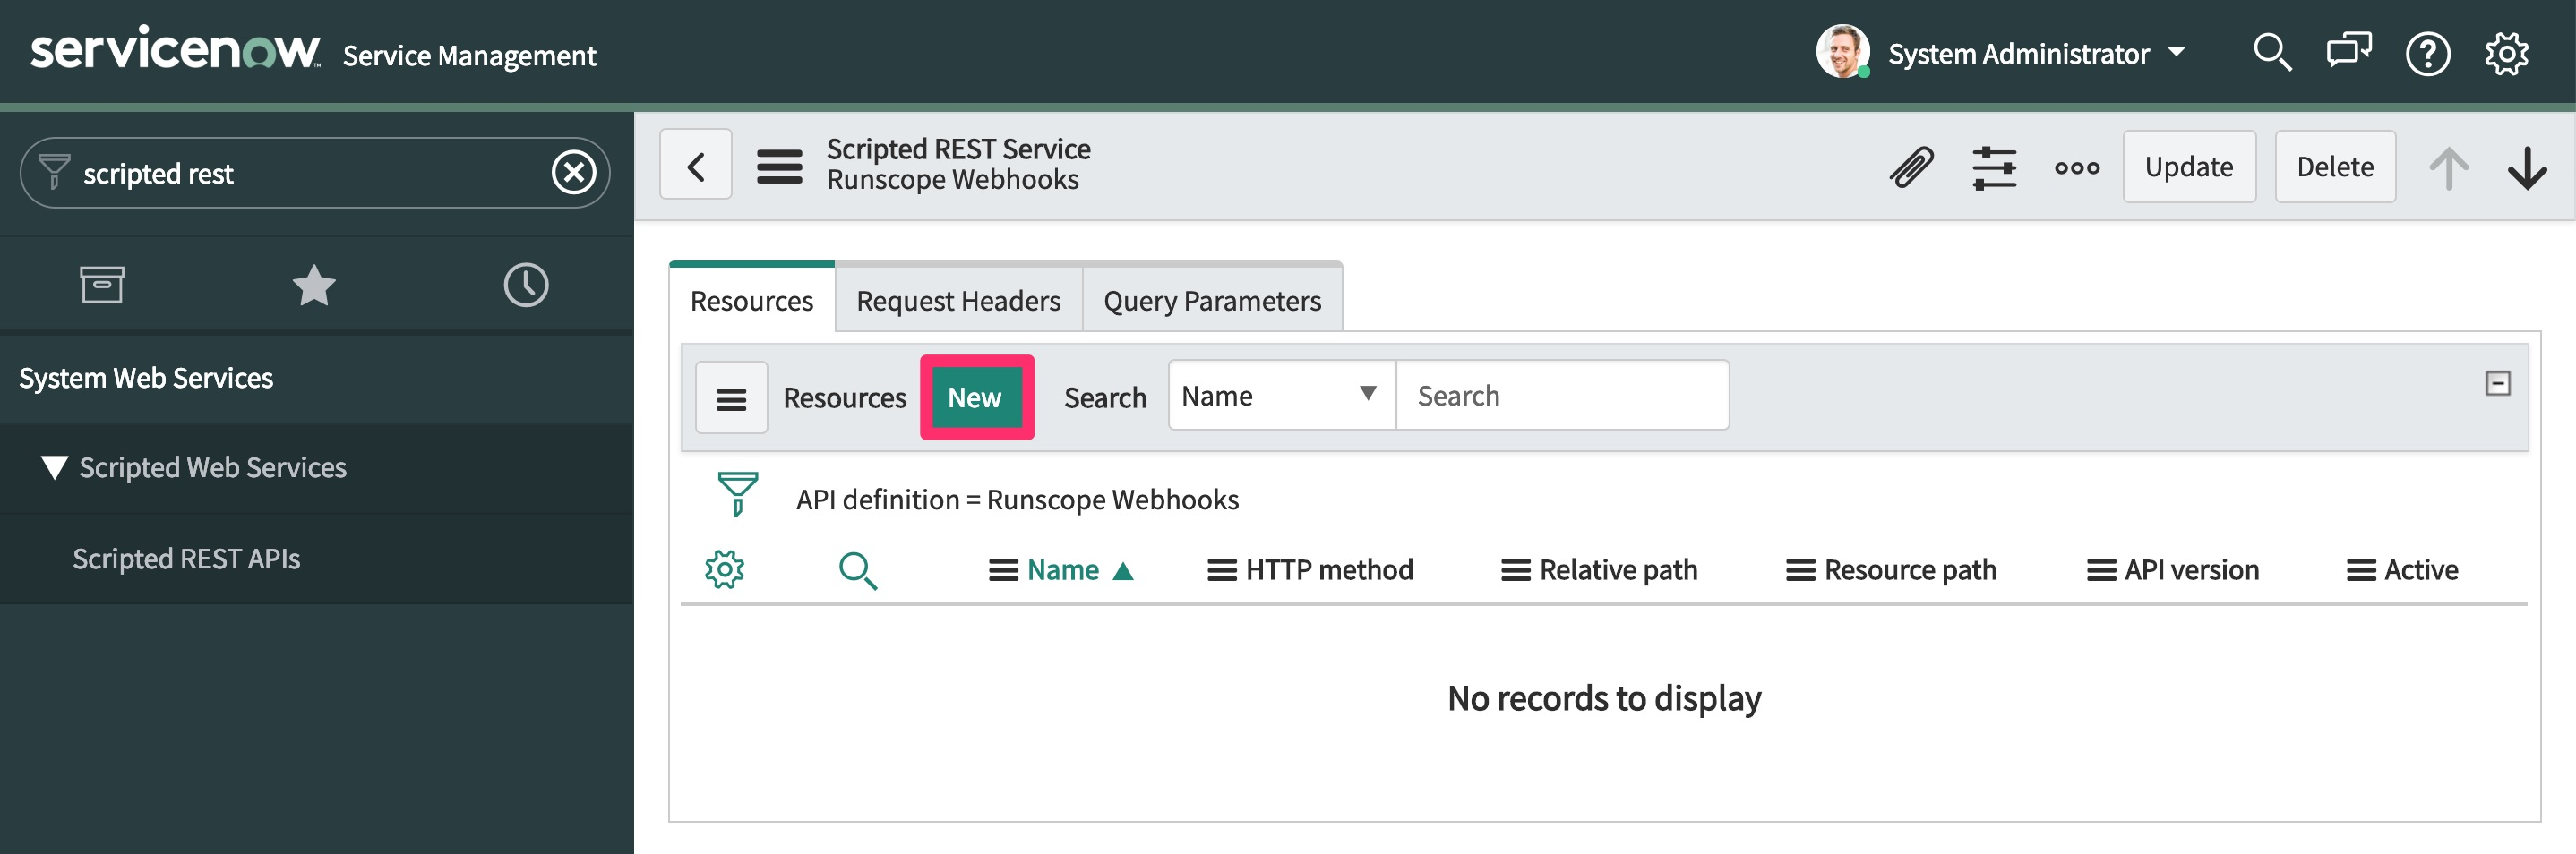 The ServiceNow Scripted REST API details view for our newly created API, highlighting the Resources tab at the bottom of the page and the New button